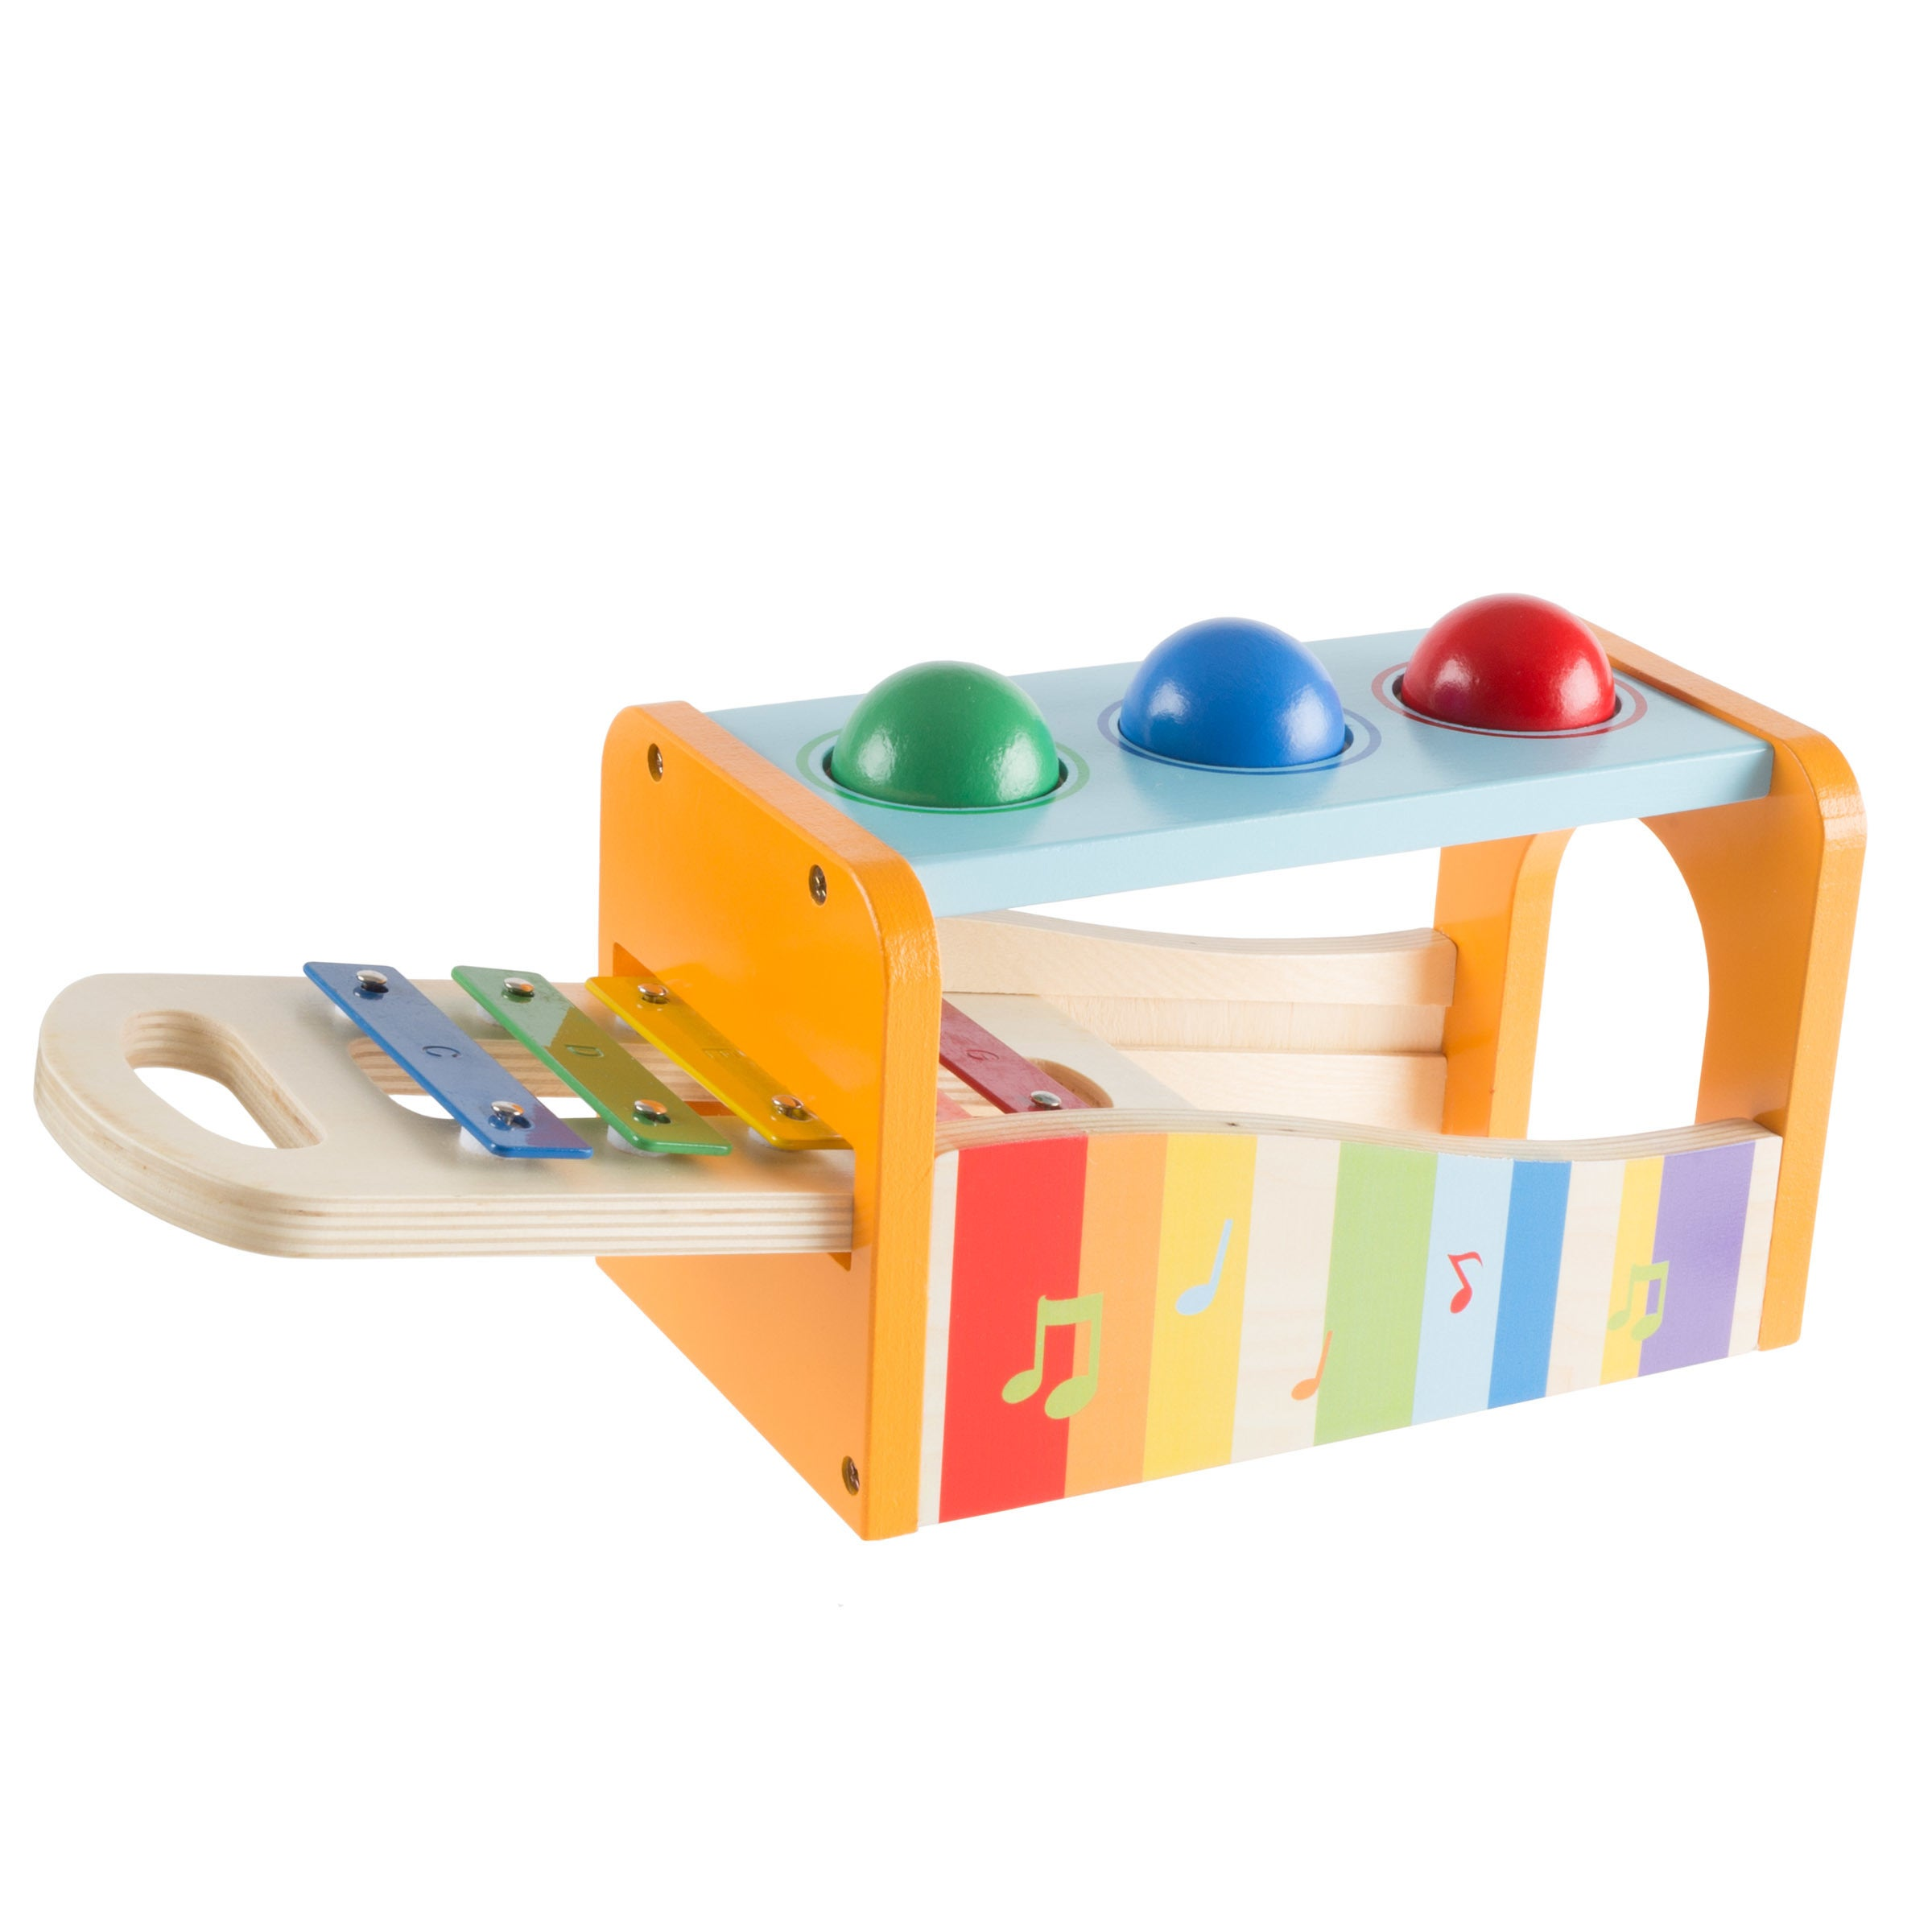 wooden bench toy with musical xylophone and interactive pounding hammer and  balls, educational toyhey! play!